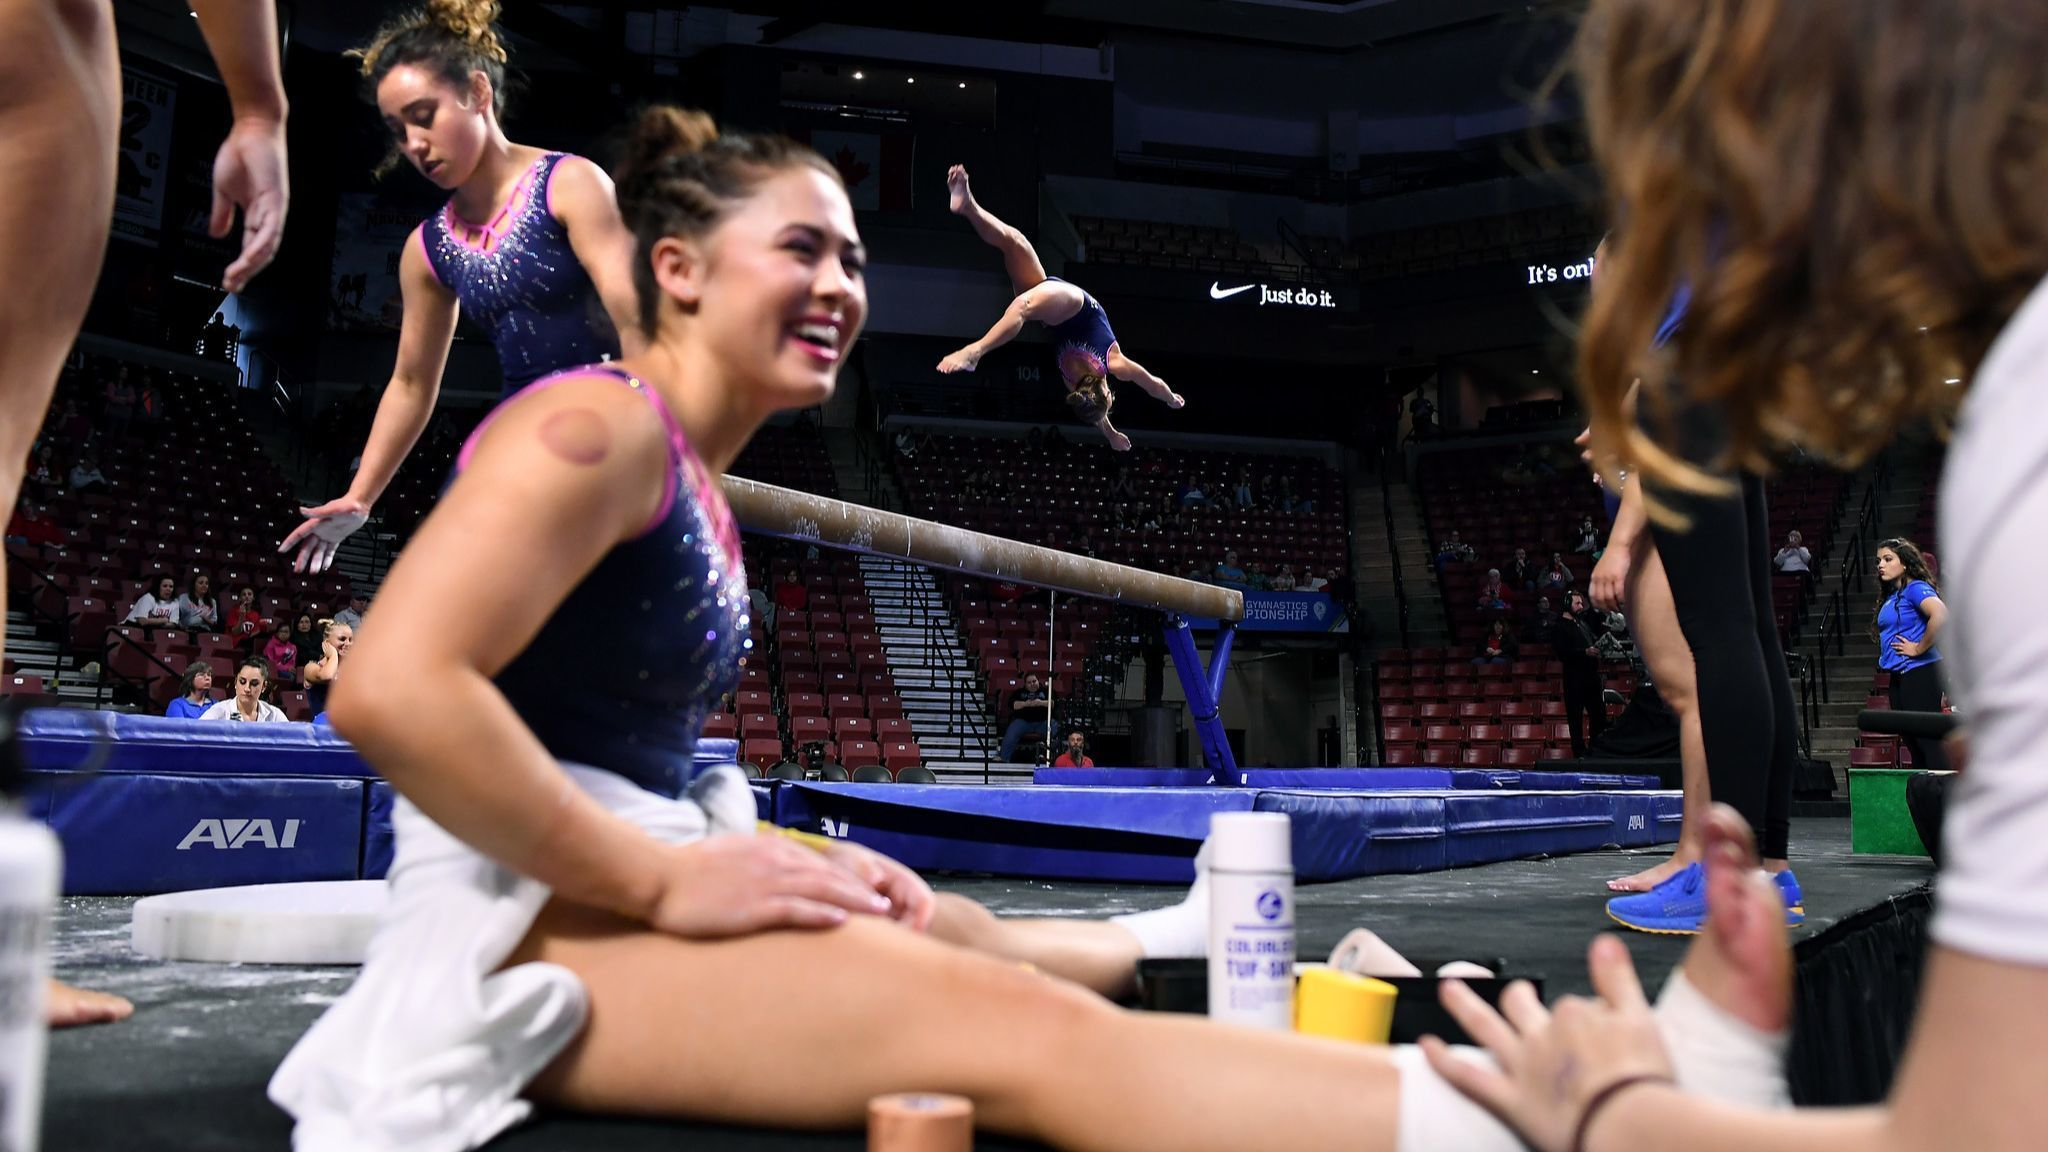 UCLA gymnasts prepare before the PAC-12 Championships in Salt Lake City.